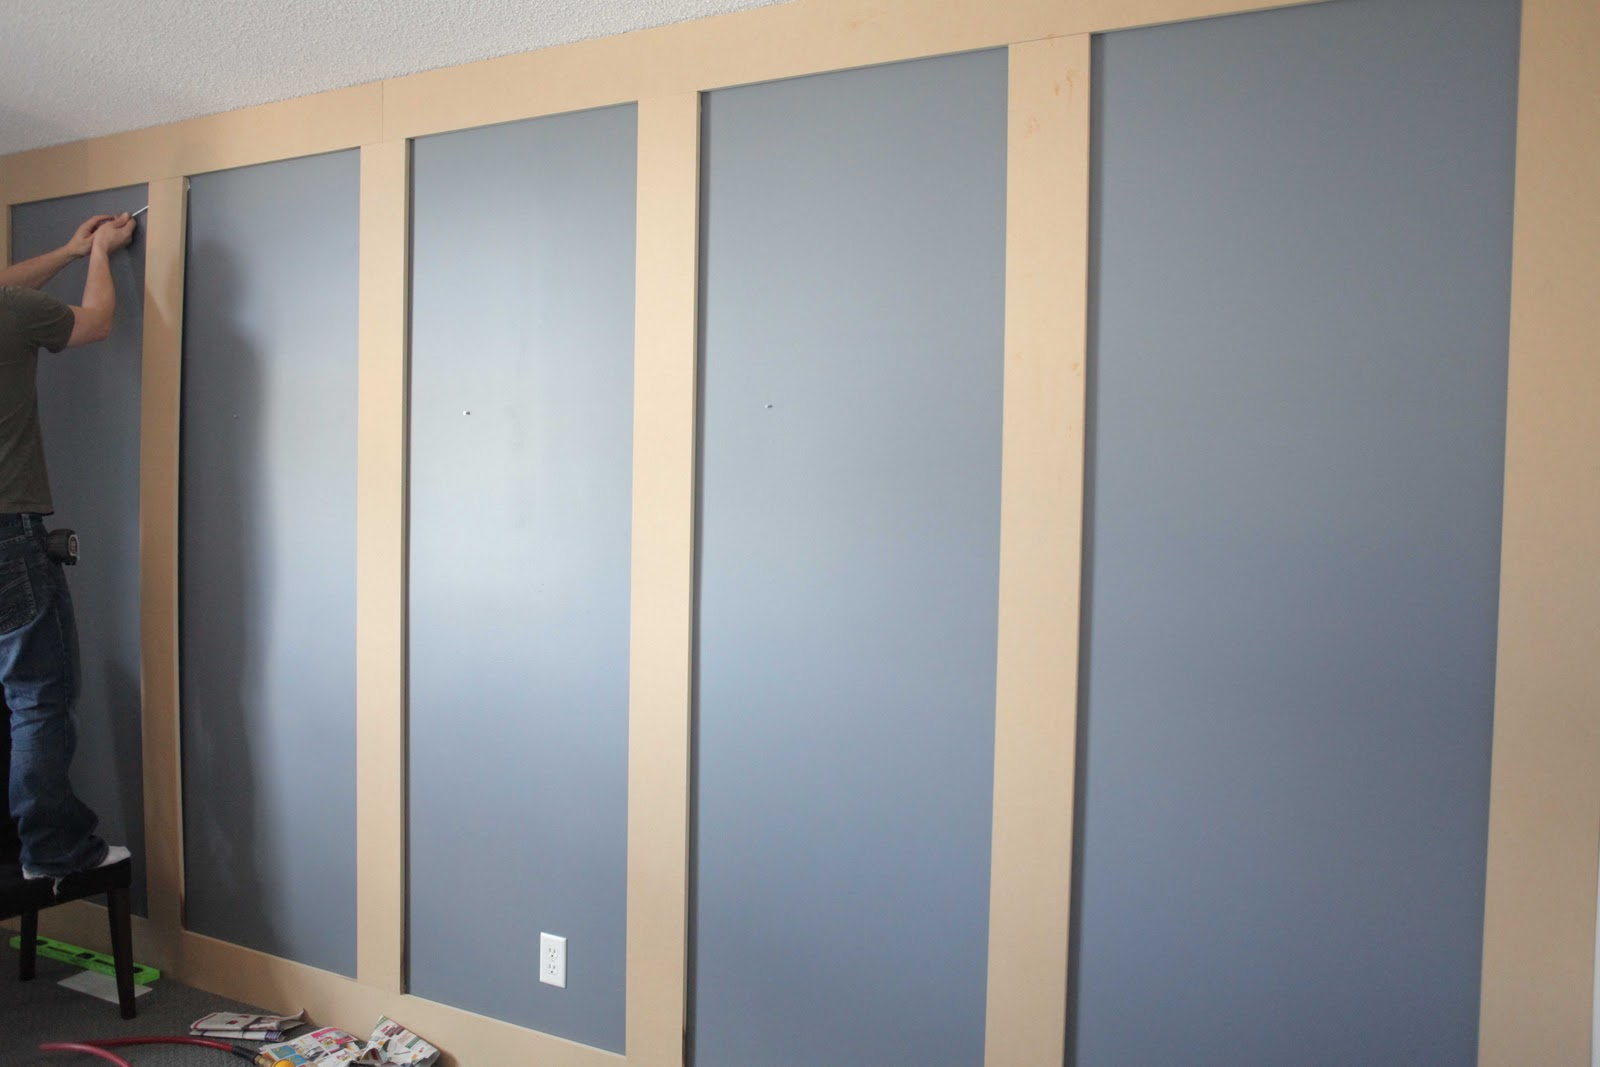 Diy Wall Paneling : Beach house in the city grid panelling diy